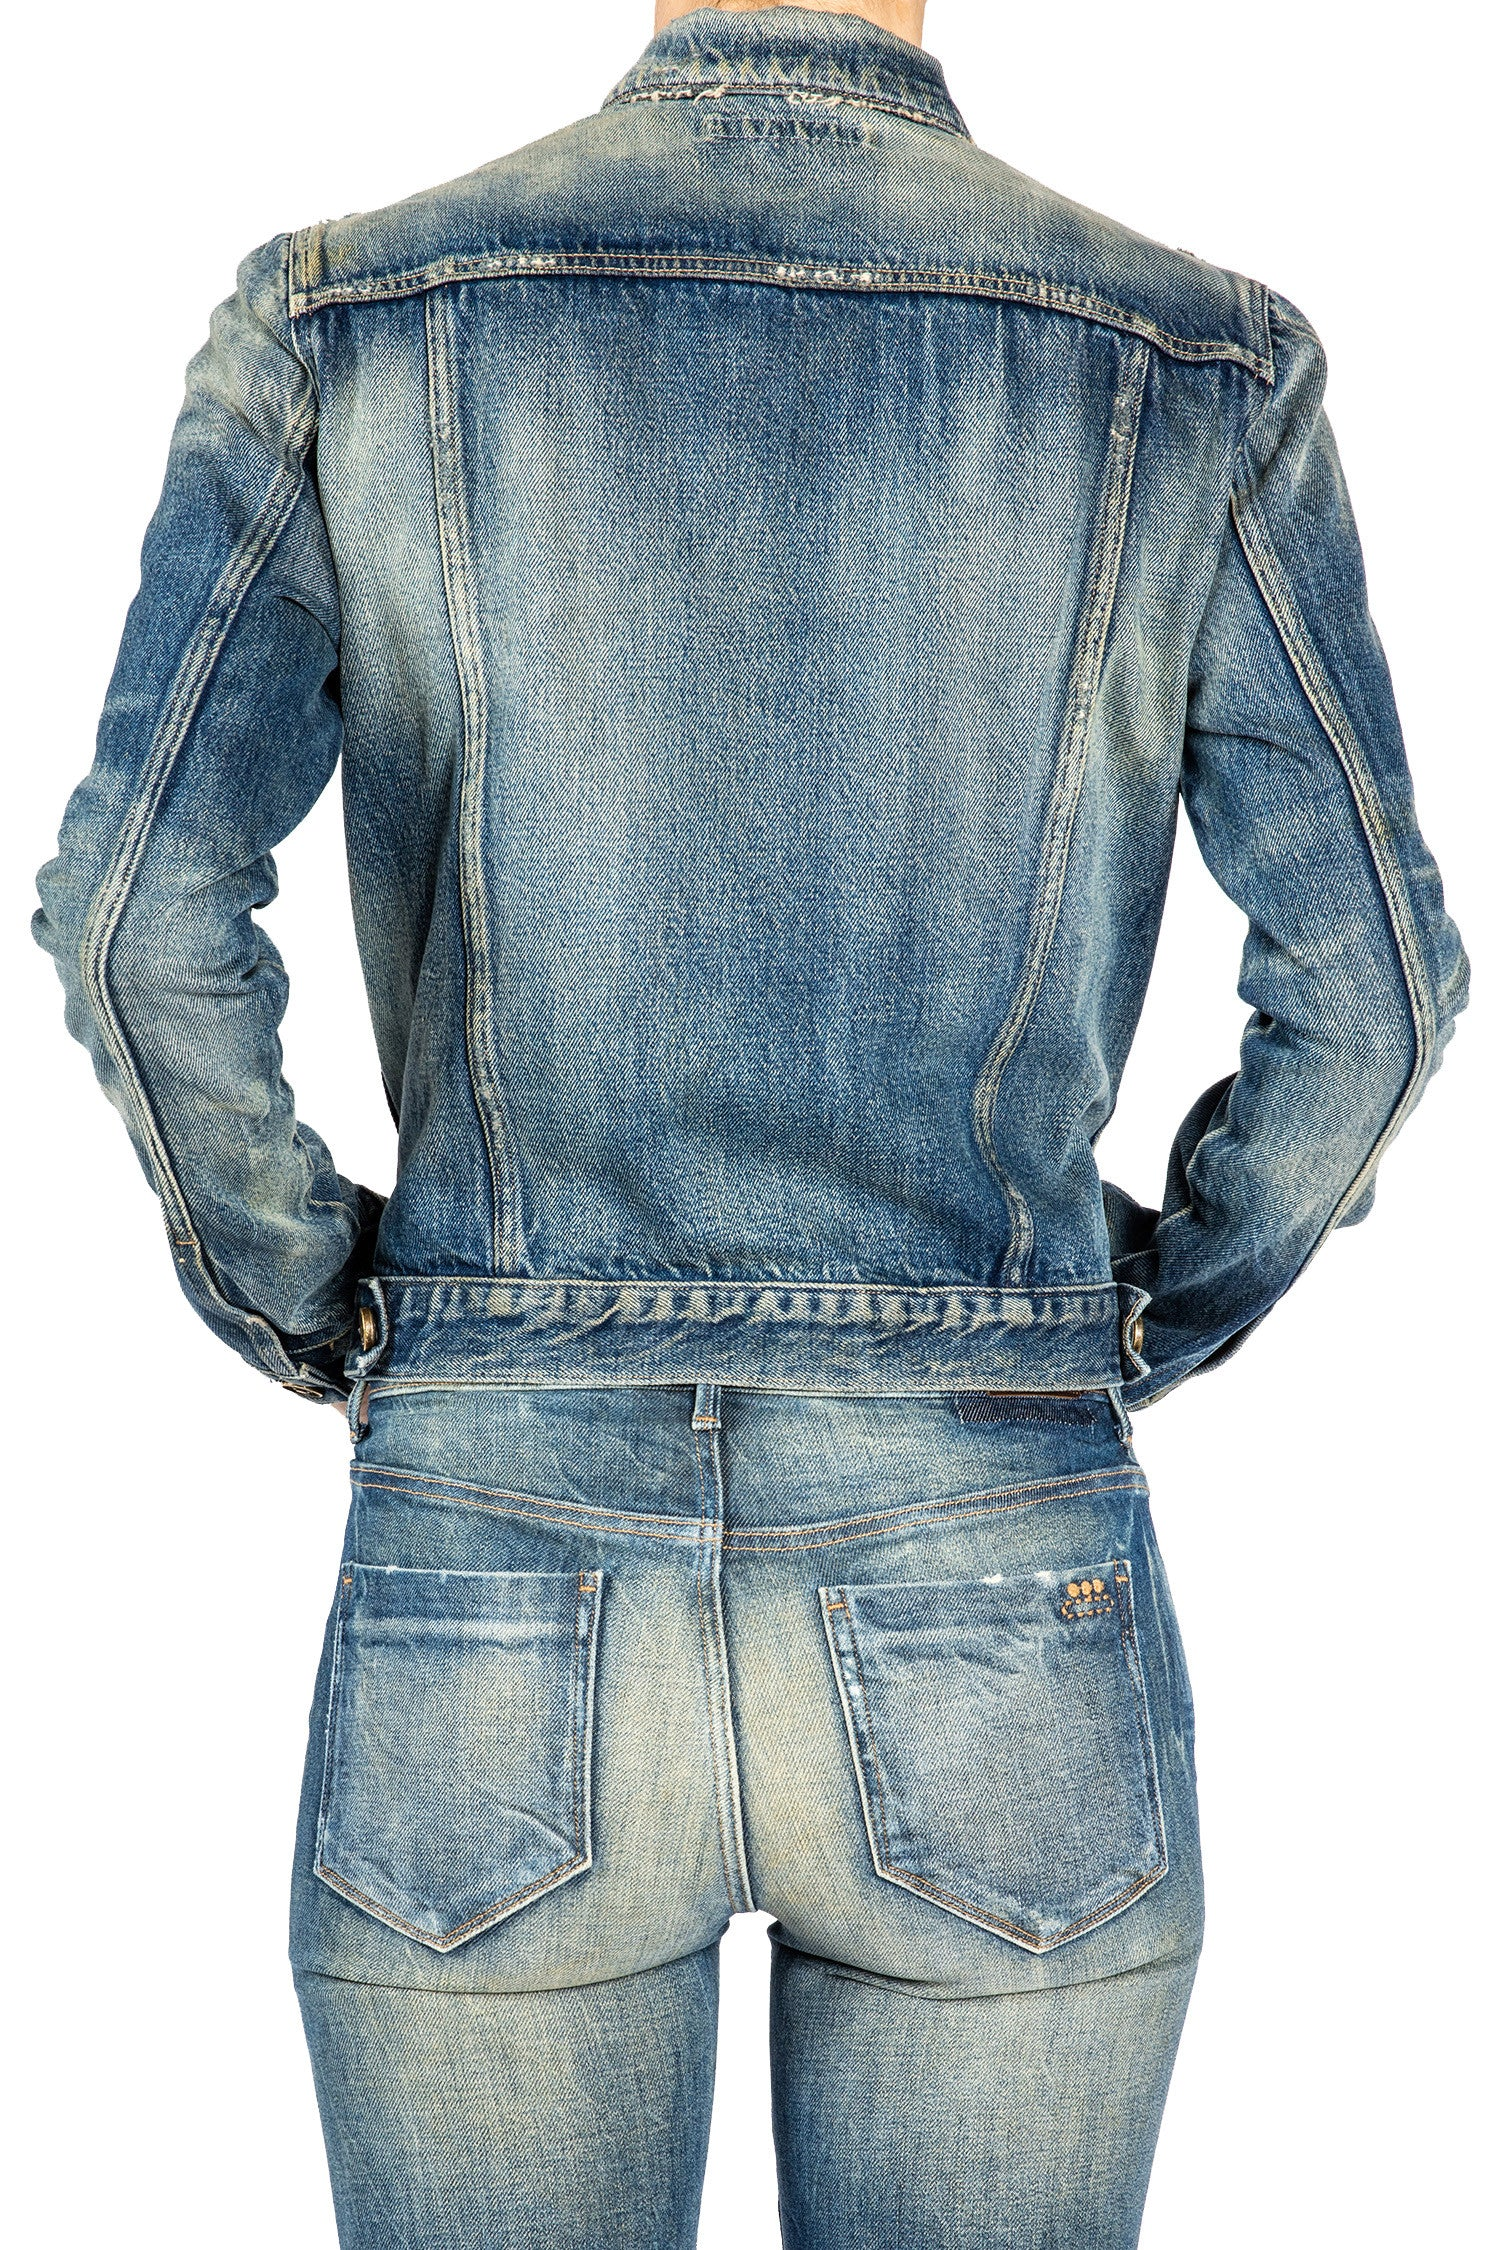 Birkin Denim Jacket - Renegade